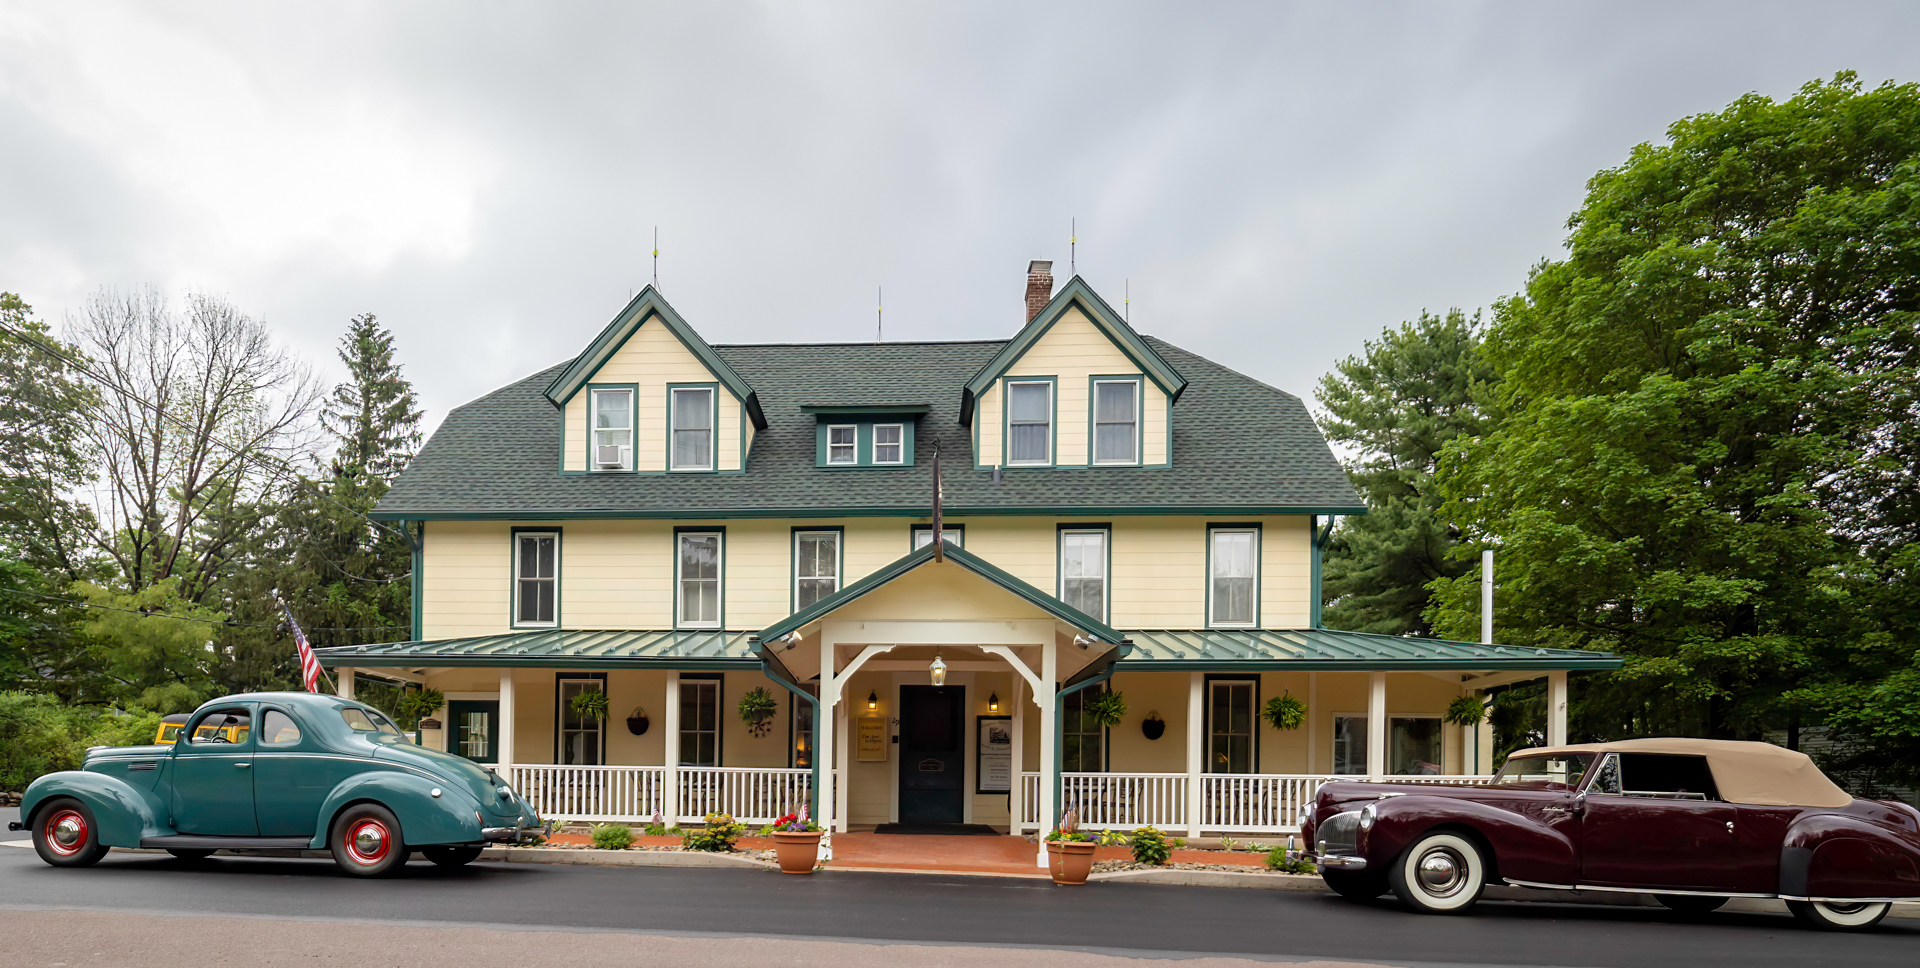 Historical Image of Exterior, Eagles Mere Inn, 1887, Member of Historic Hotels of America, in Eagles Mere, Pennsylvania